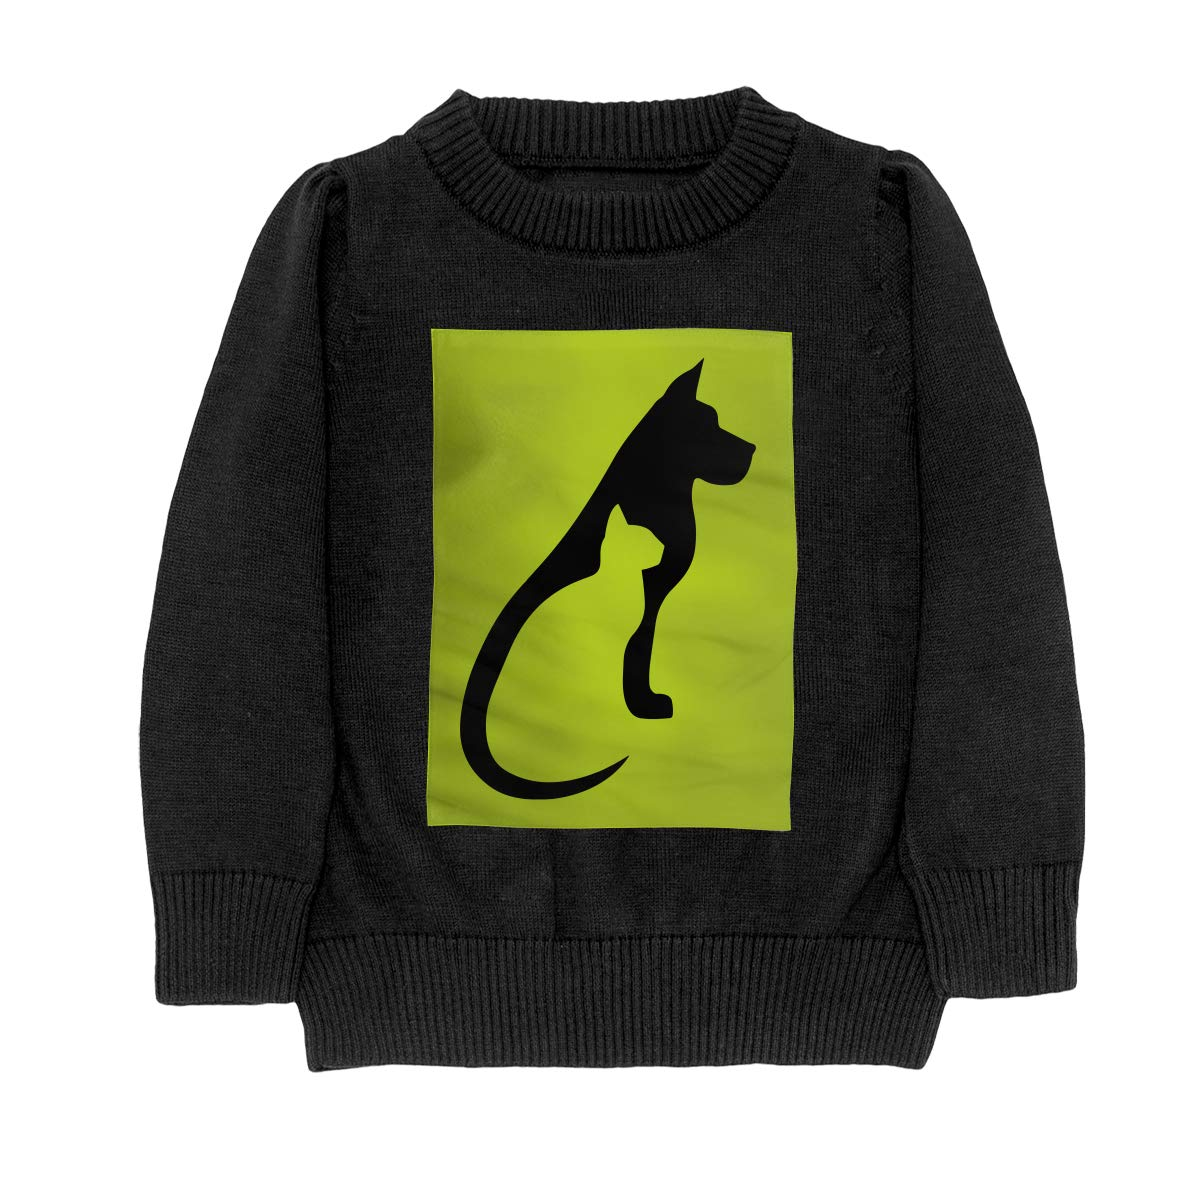 Cat and Dog Cool Teenager Boys Girls Unisex Sweater Keep Warm